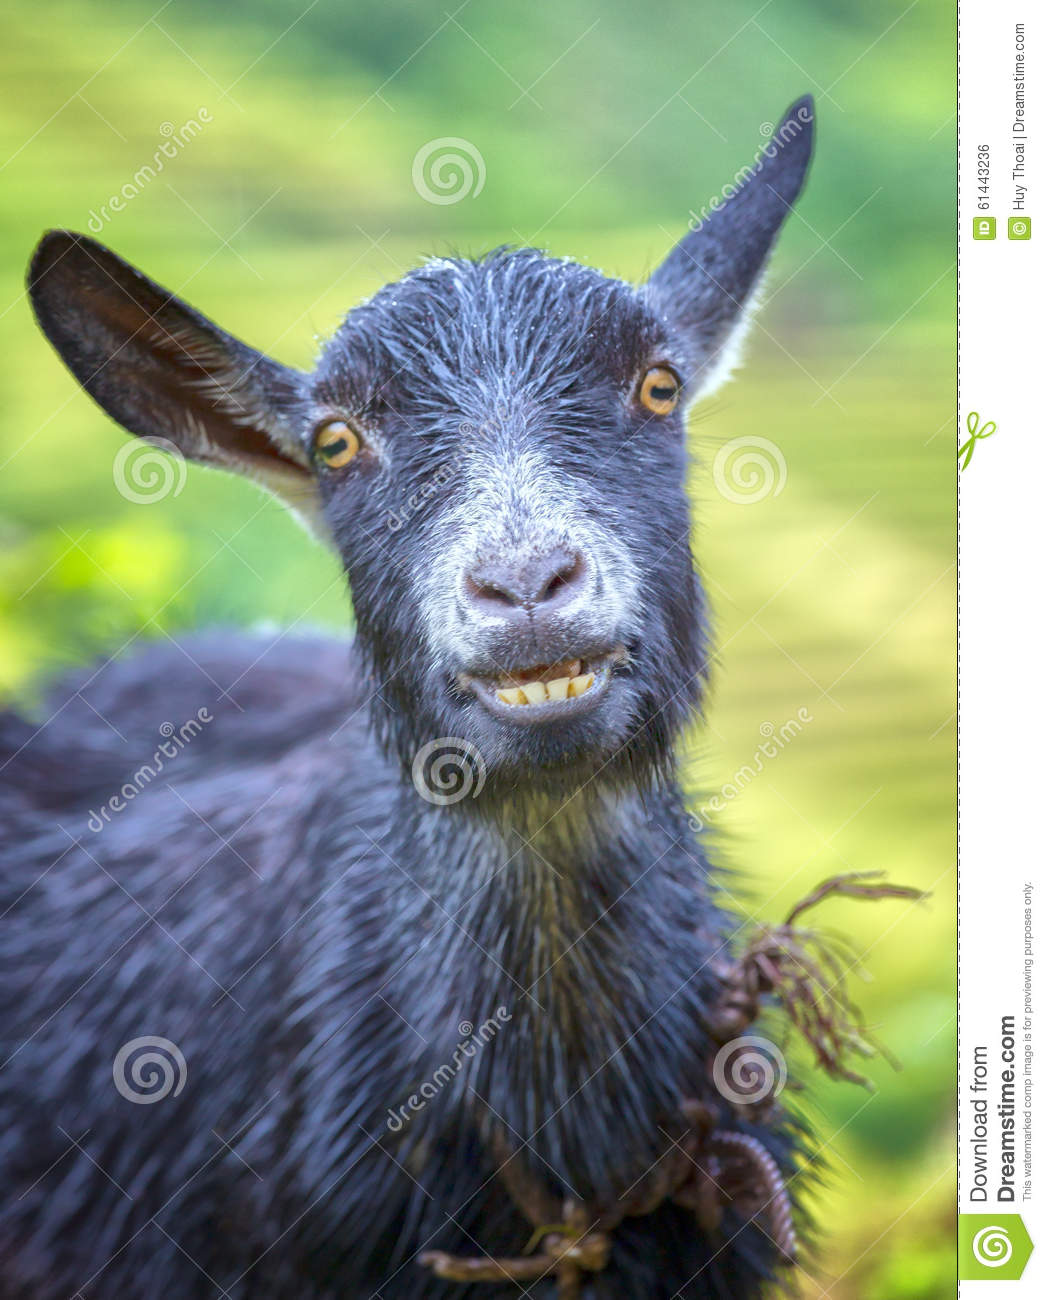 Goat Laugh Stock Photo - Image: 61443236